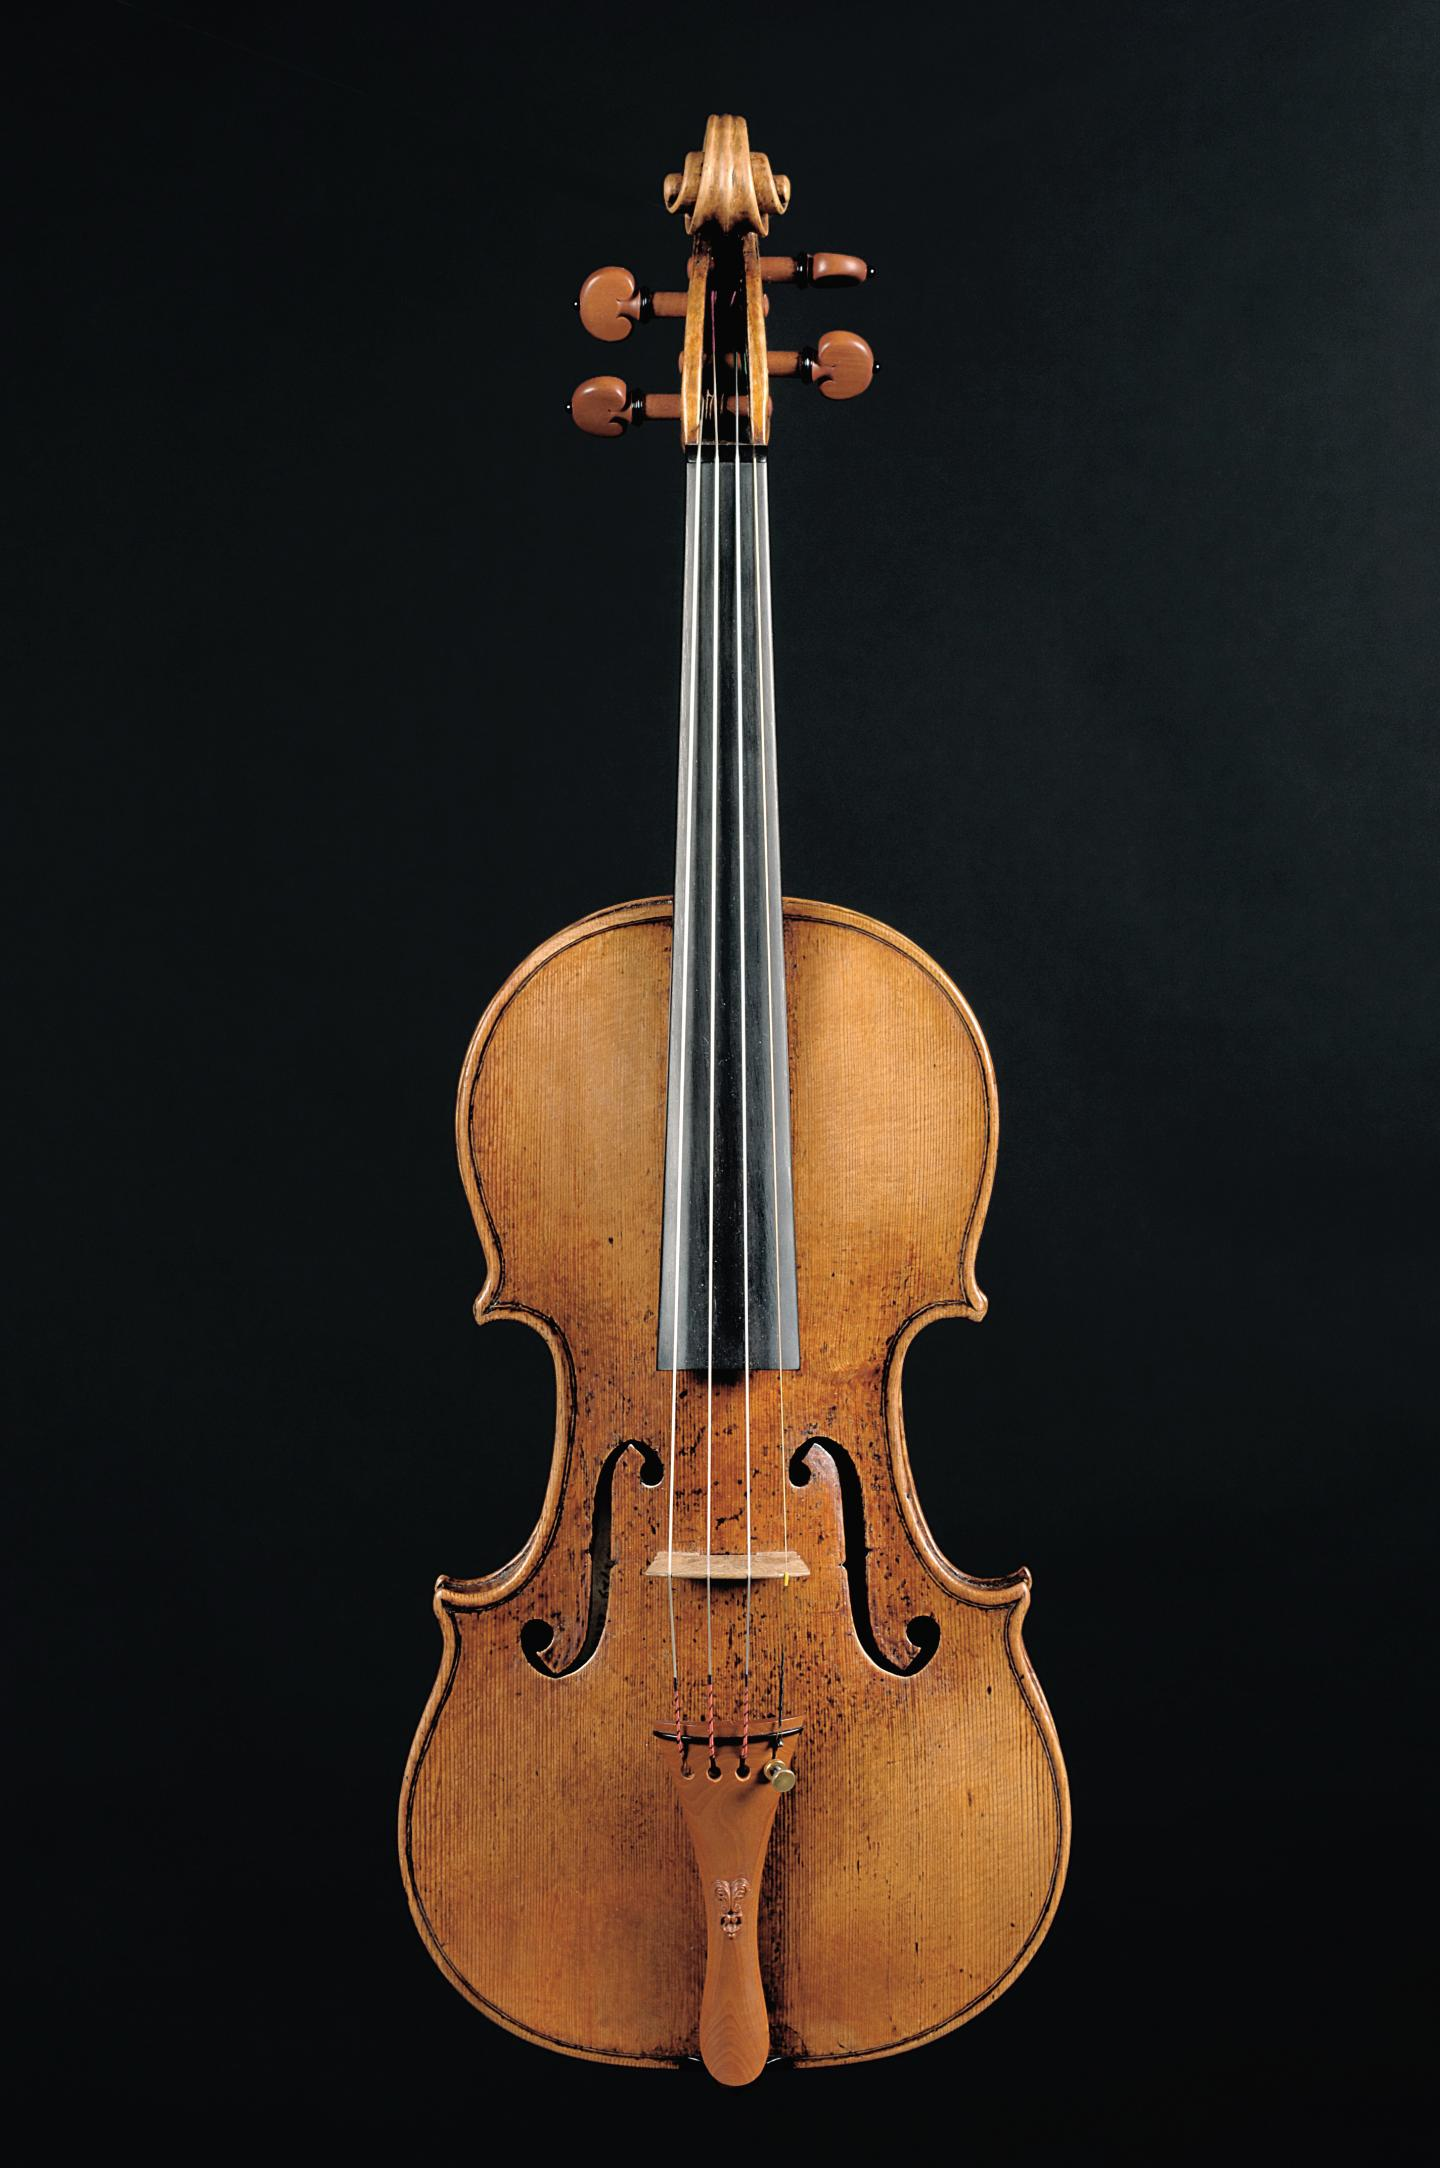 This is the 'Caspar Hauser' violin by Giuseppe Guarneri 'del Gesu.' Credit: Walter Fischli - Stiftung / Martin Spiess